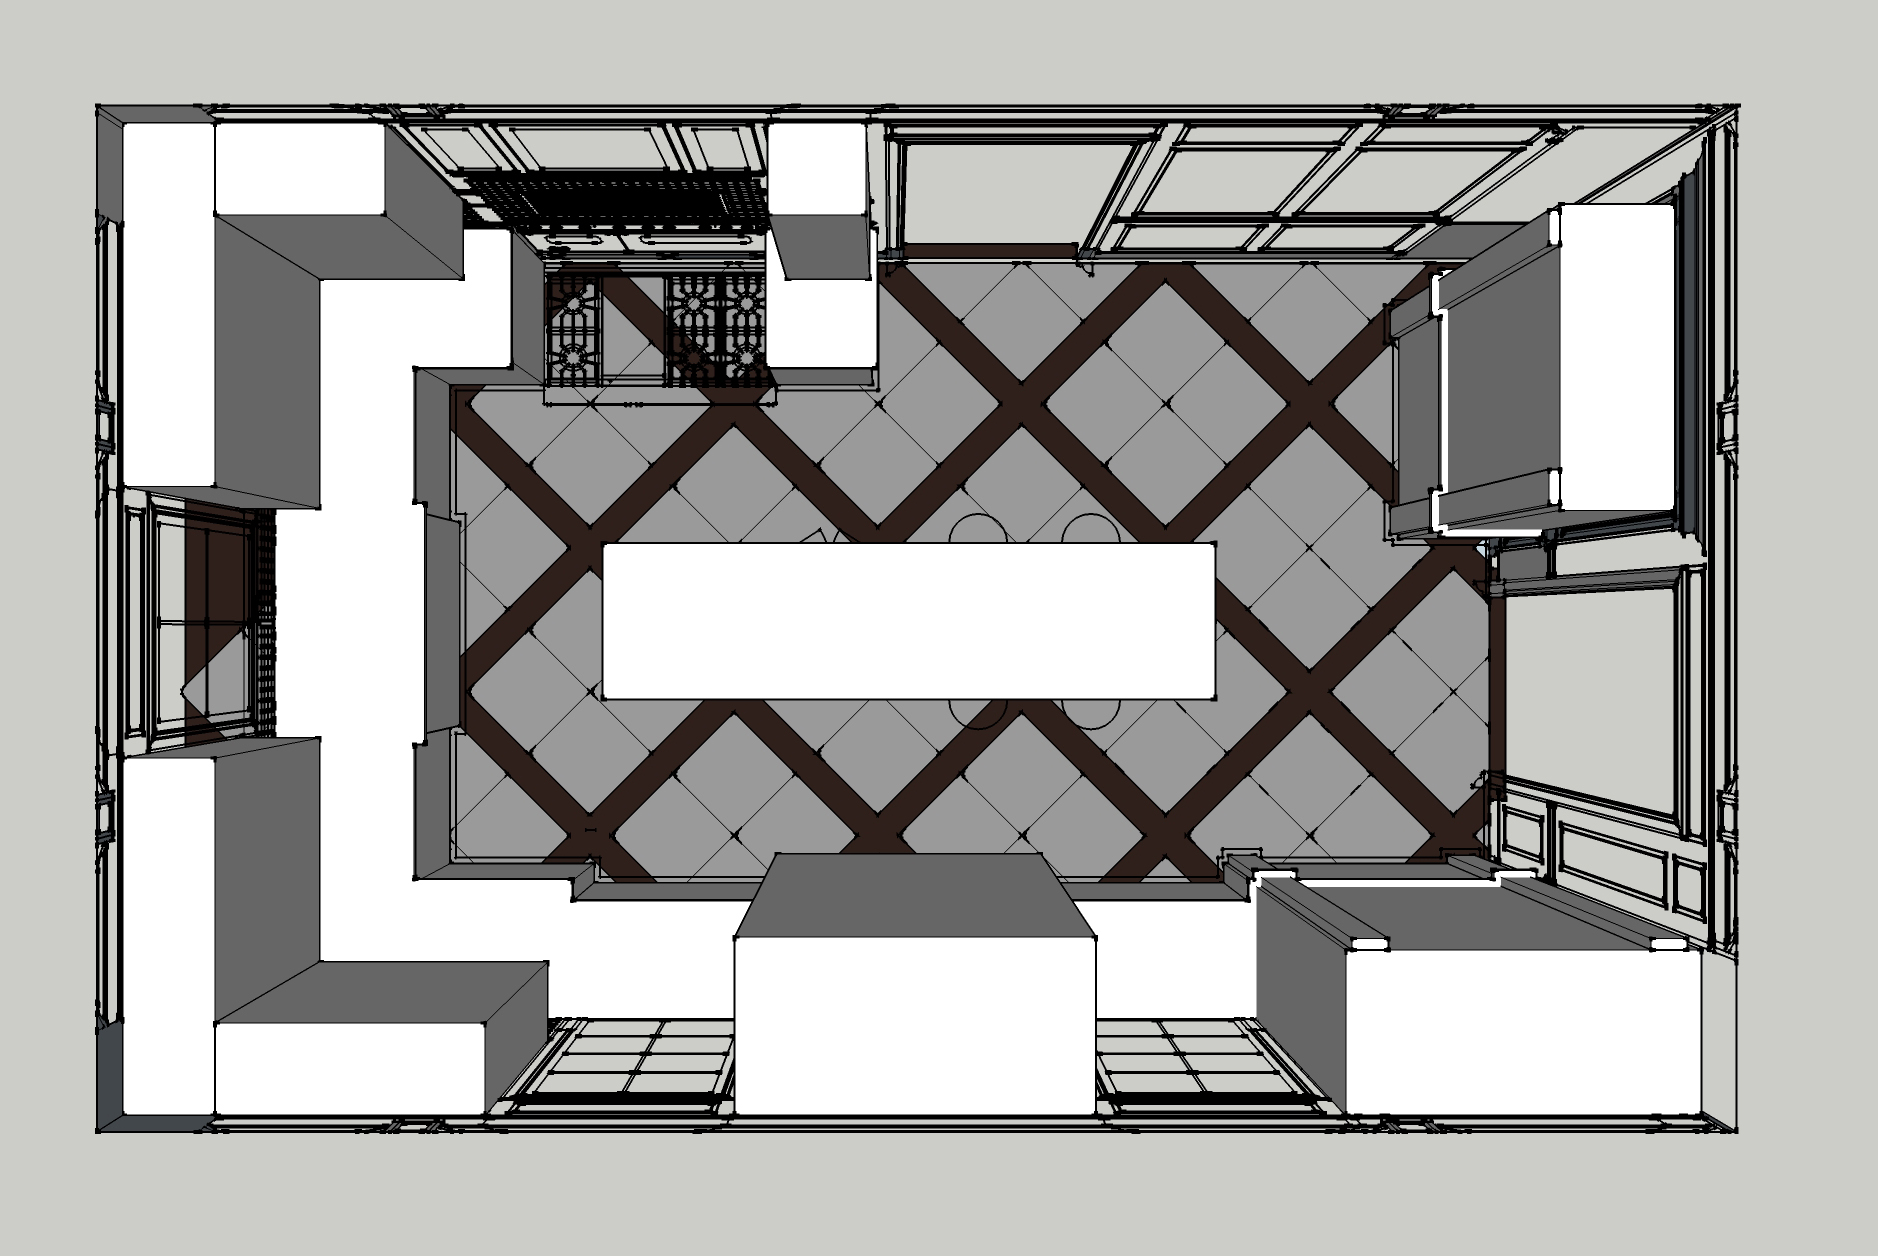 Davis_Kitchen_floor layout_Above.jpg